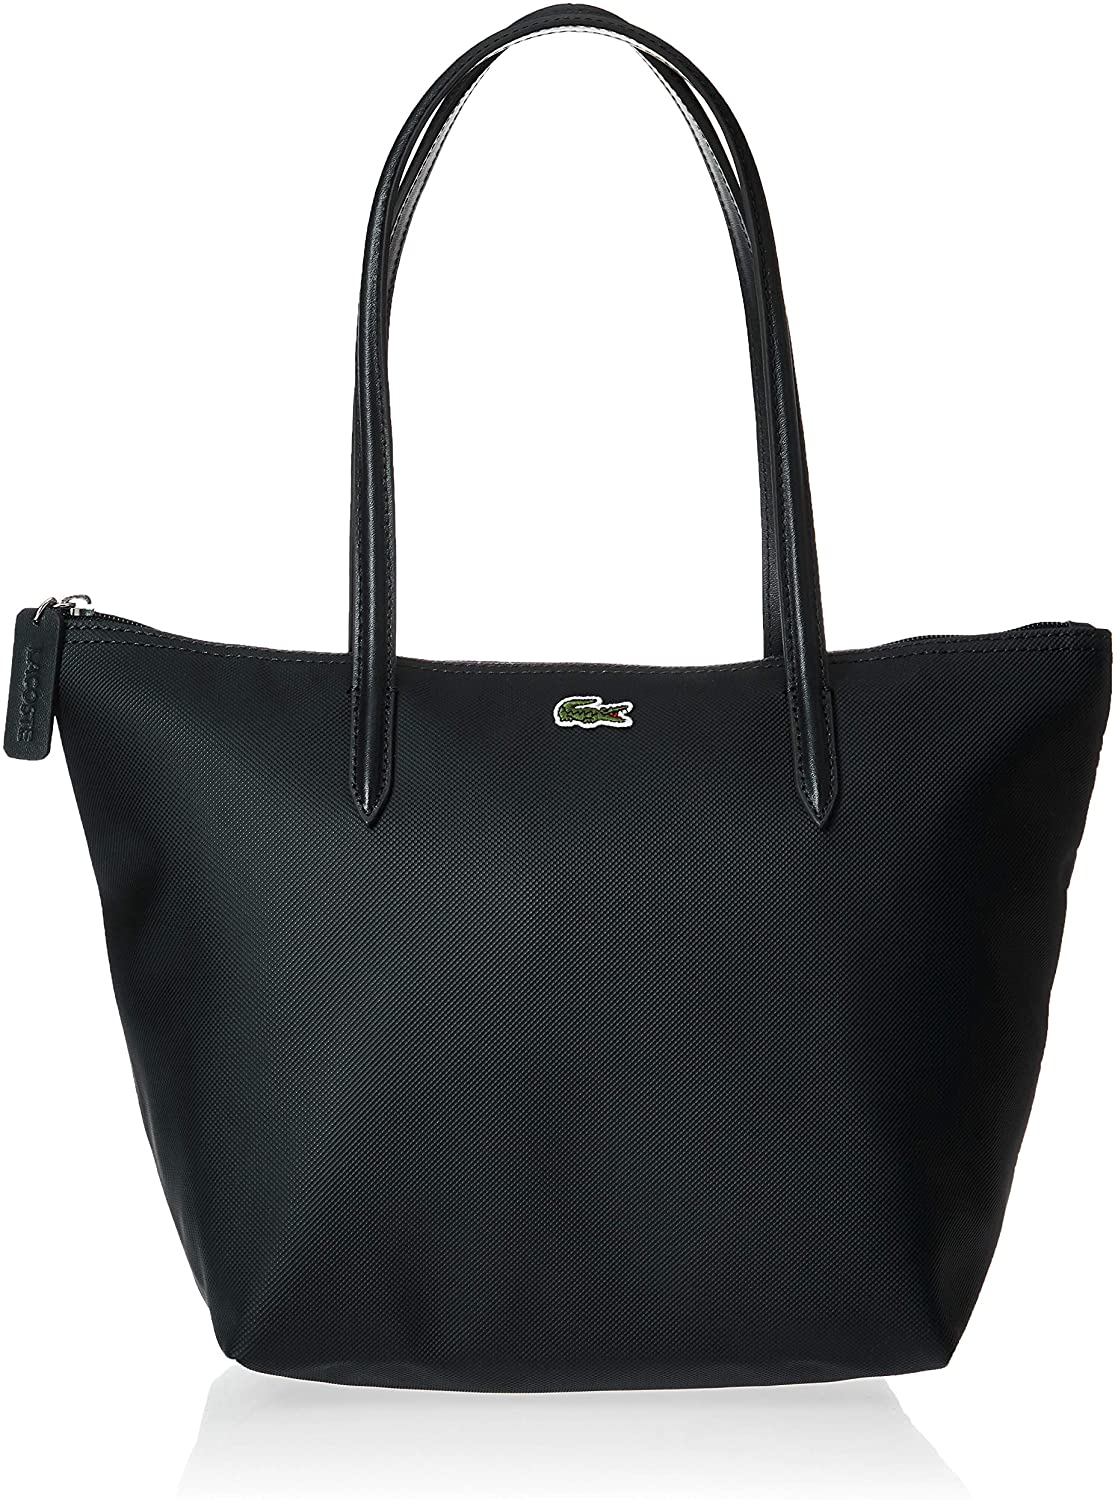 Lacoste L.12.12 Small Tote Bag